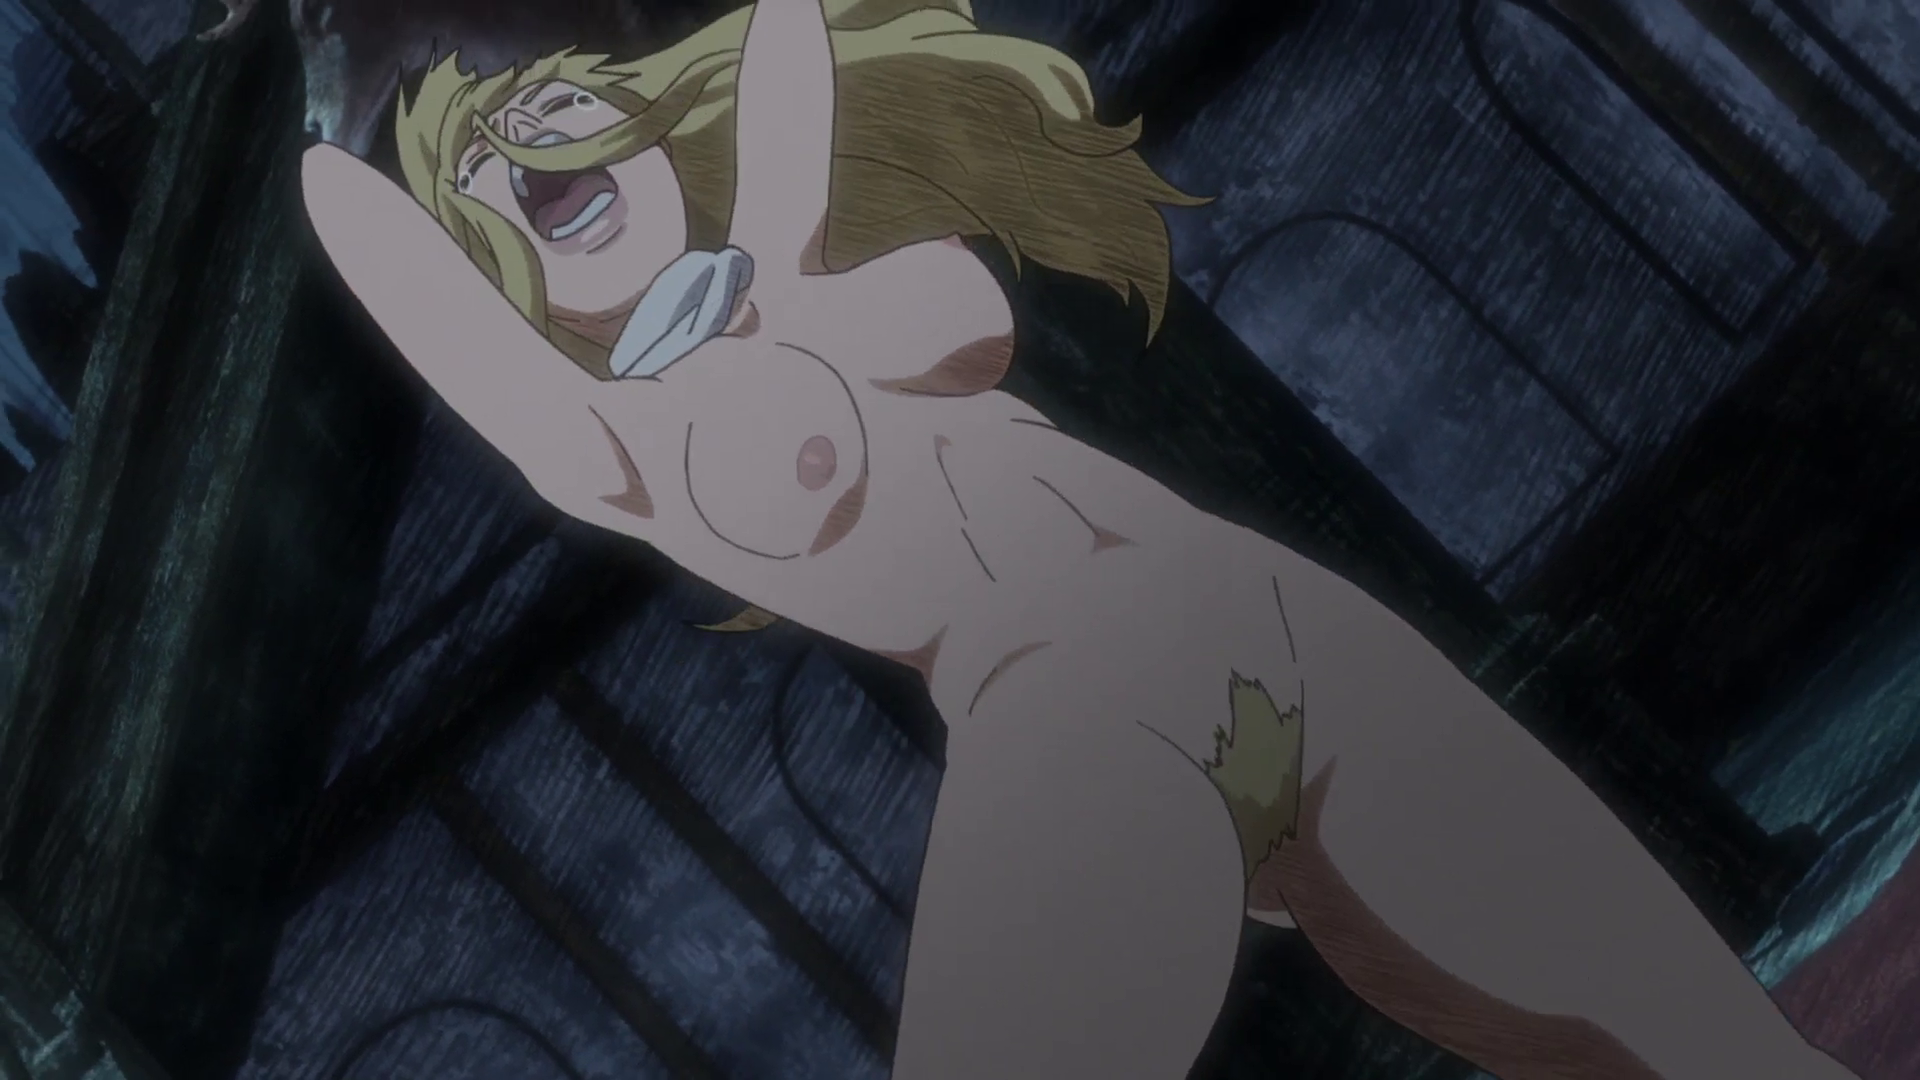 full nudity with Anime frontal